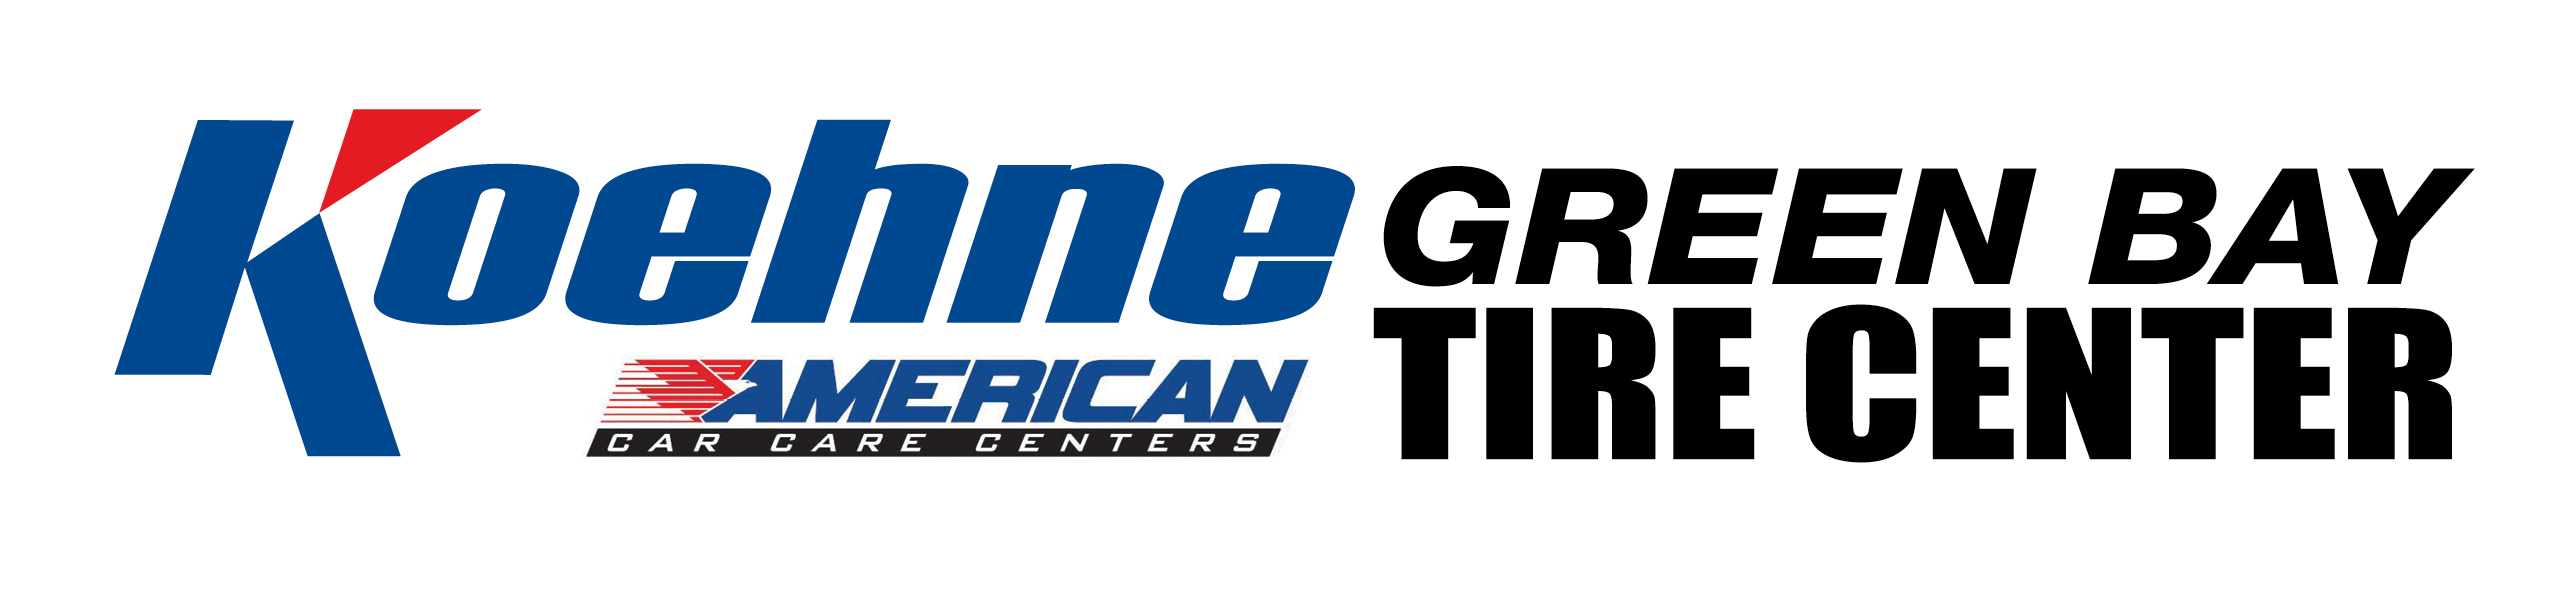 Green Bay Tire Center